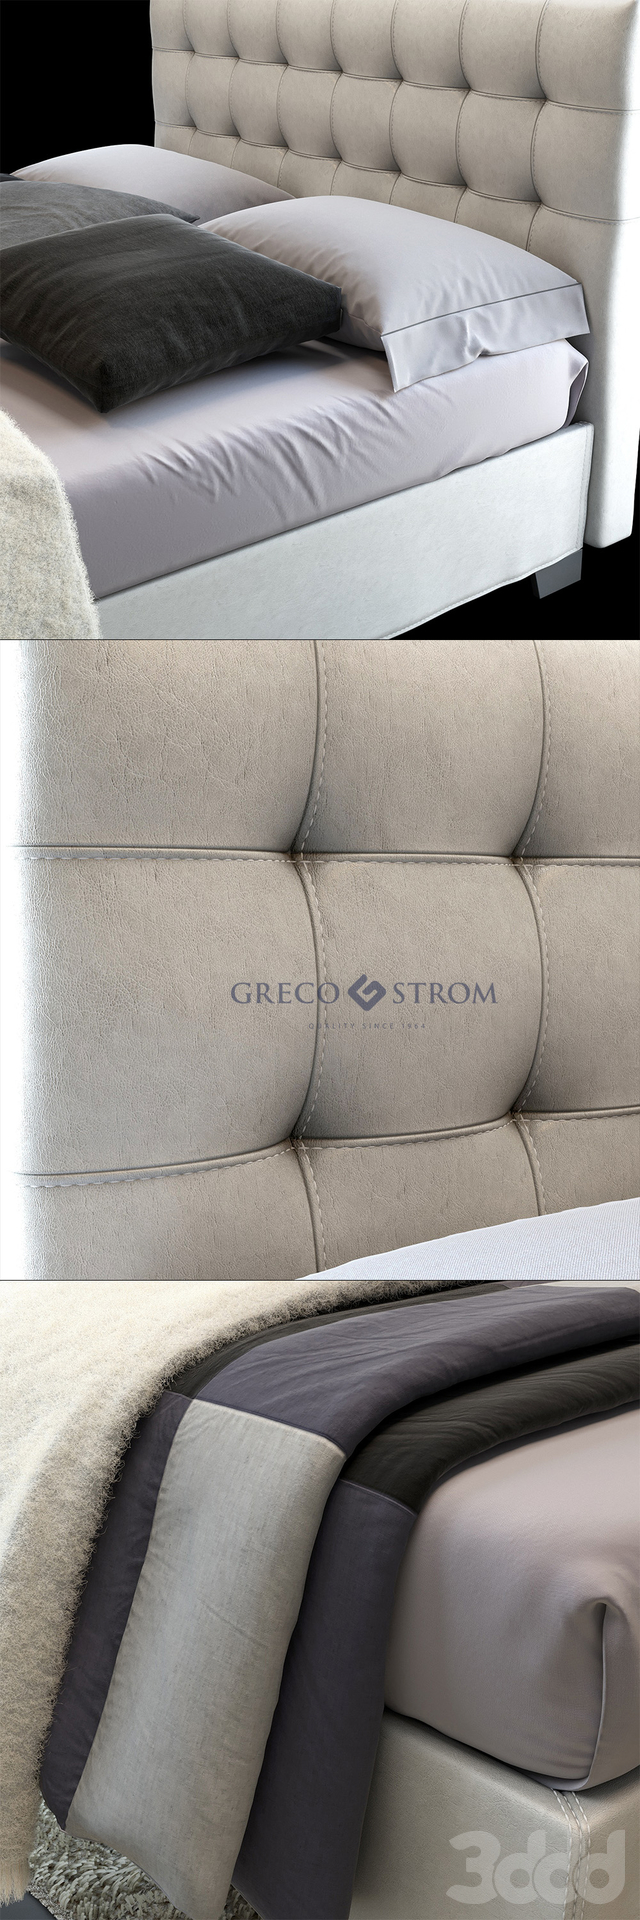 Bed LEGEND by Greco Strom